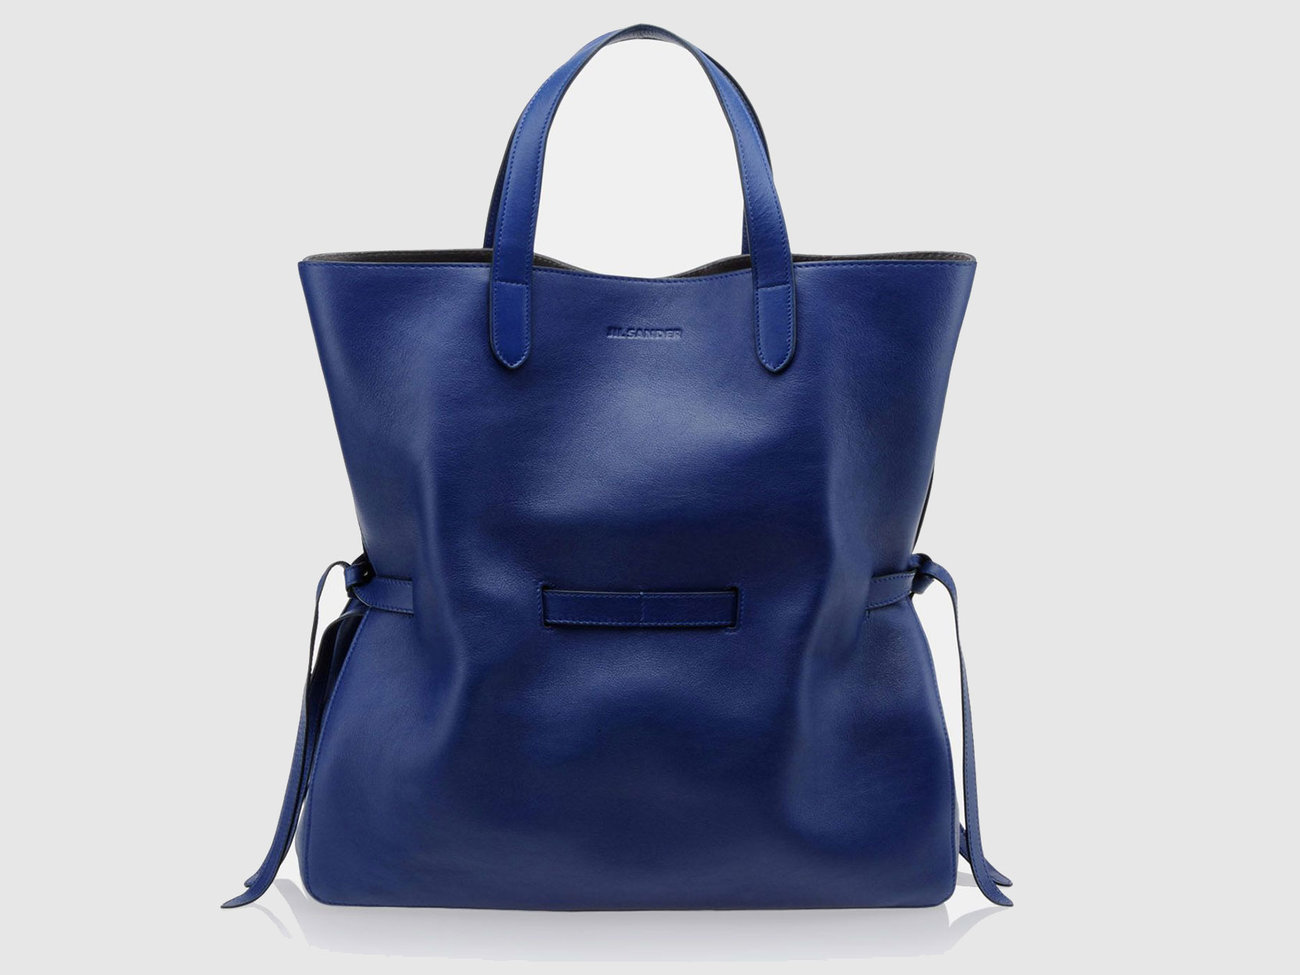 Jil-Sander-leather-tote-GG1215.jpg